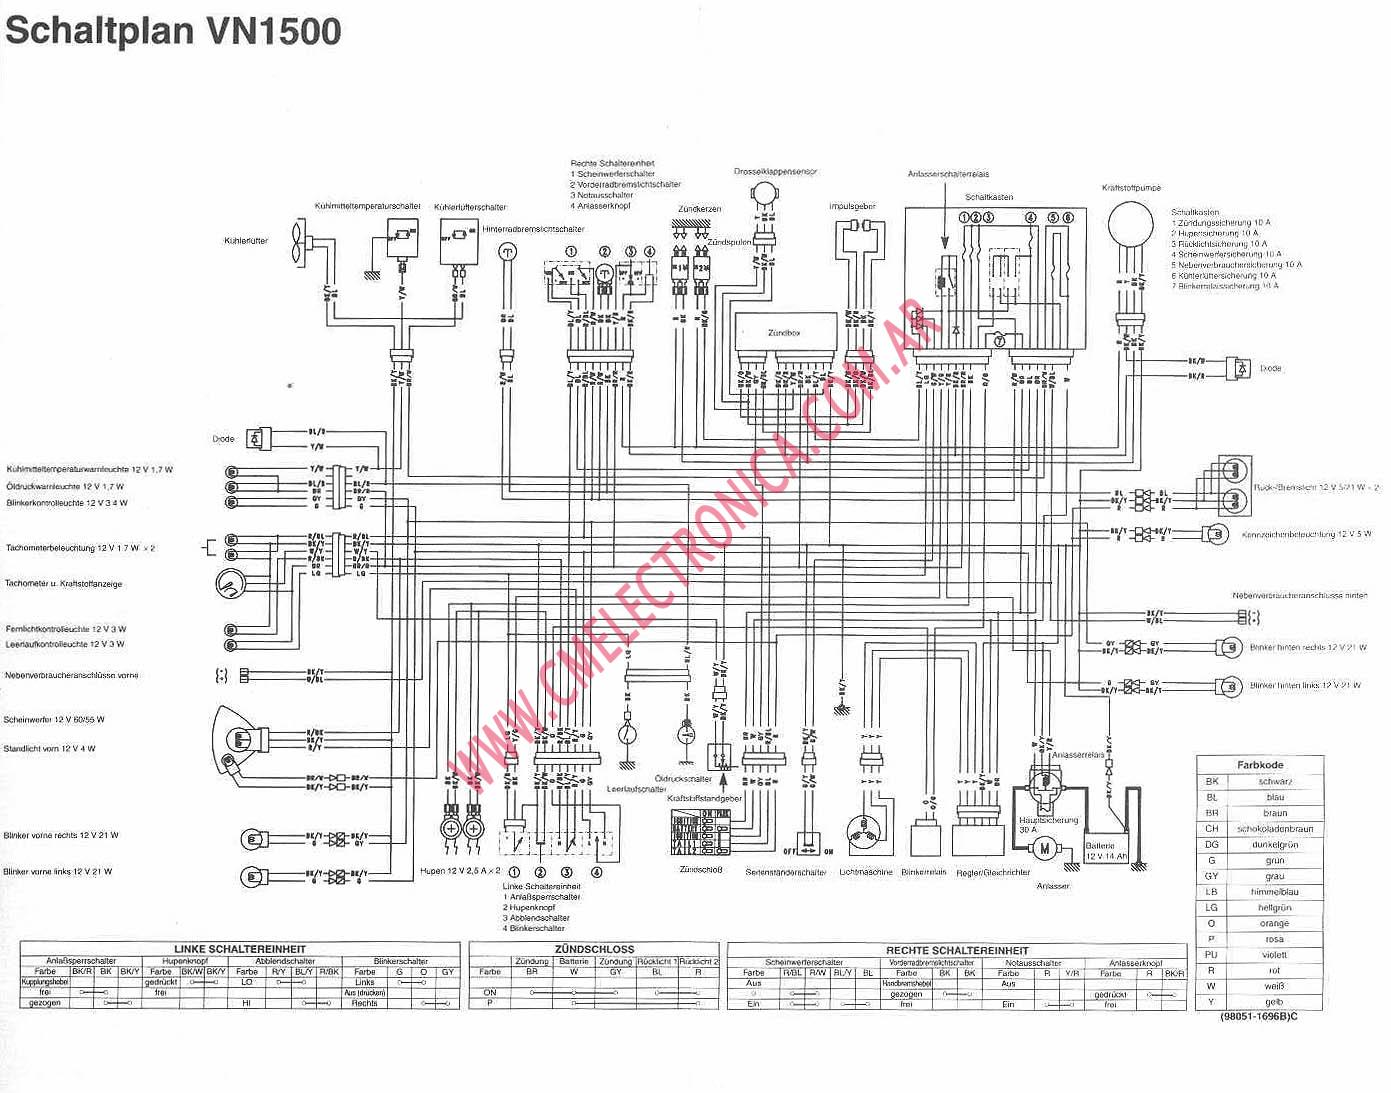 kawasaki zx12r wiring diagrams  kawasaki  free engine image for user manual download